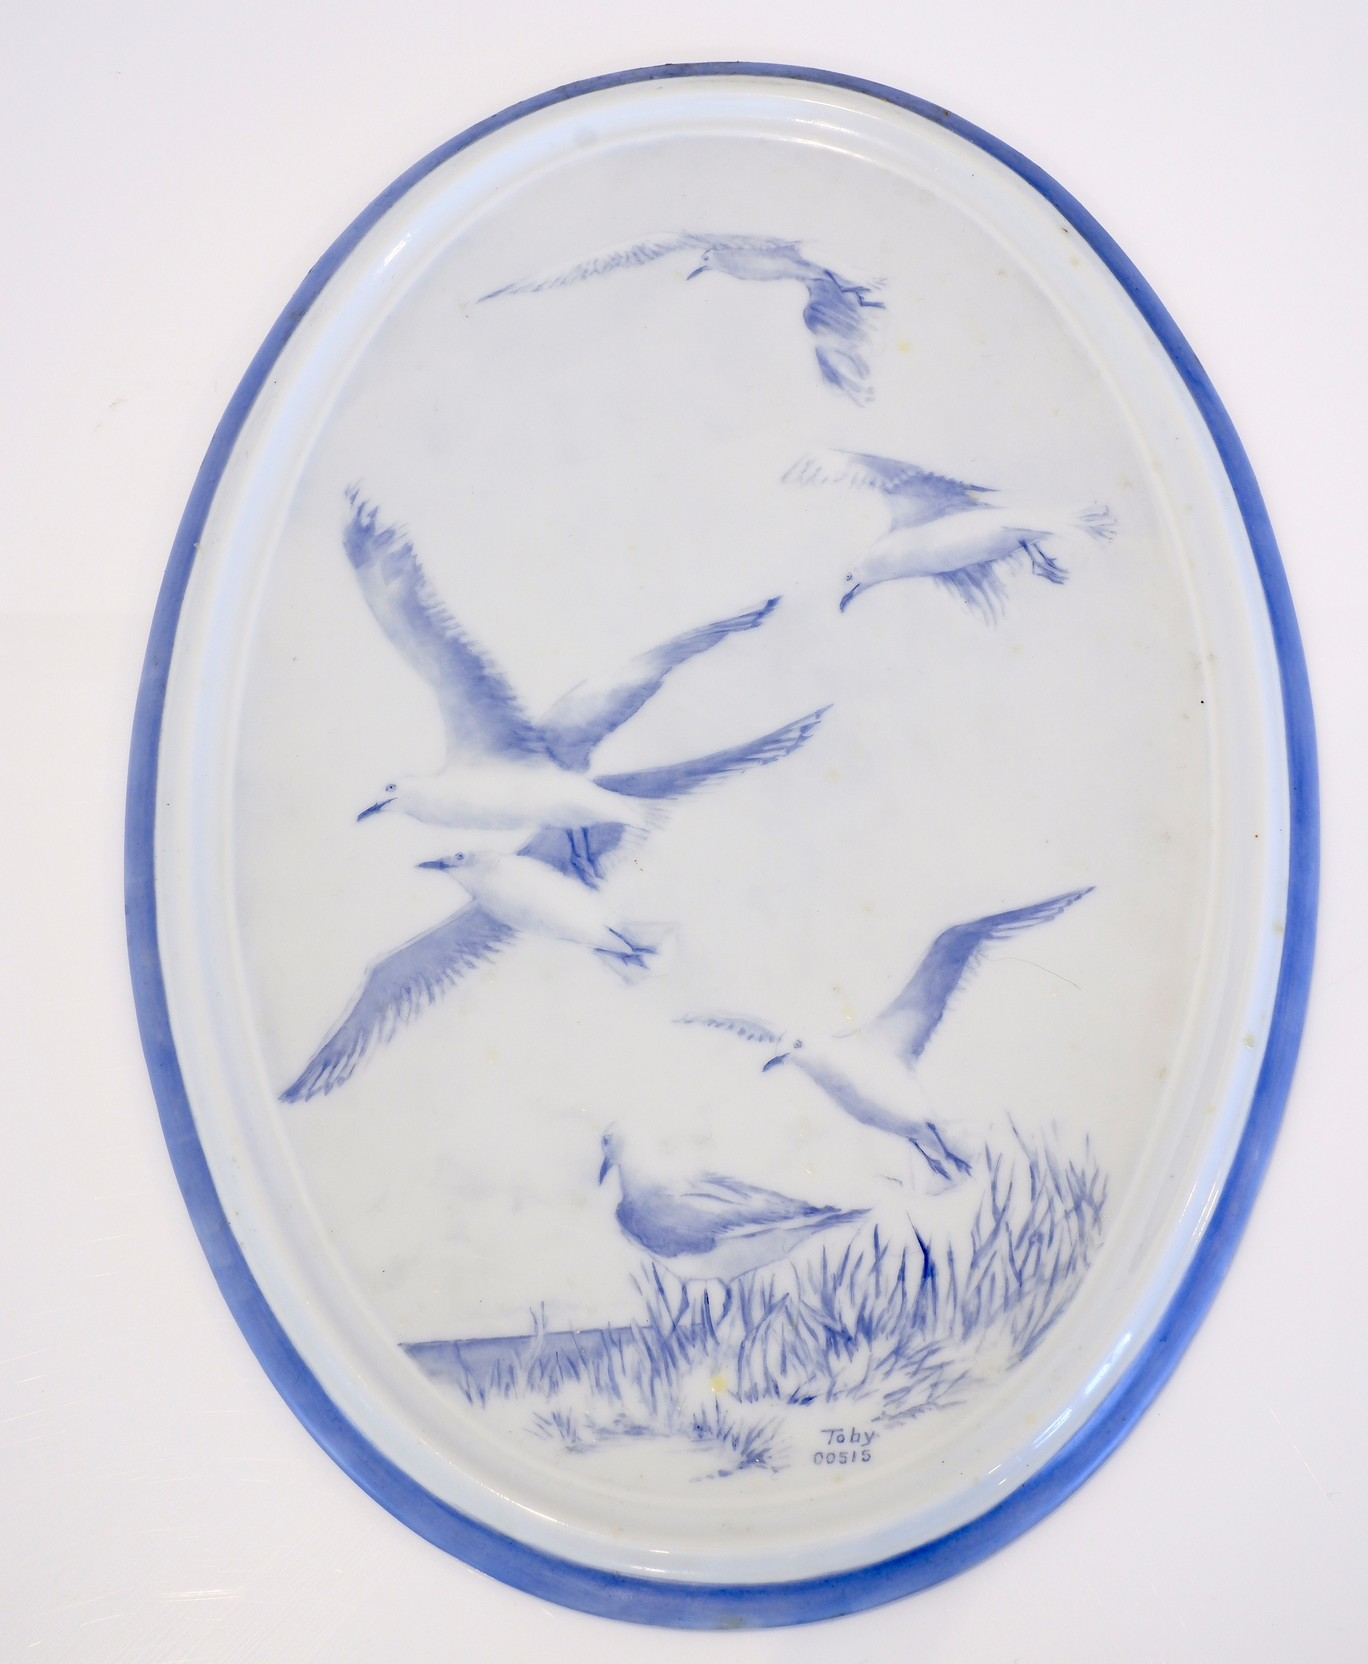 'Hand Painted Porcelain Dish by Toby Presented to Sir William Keys for Opening the Nursing Wing of the Ex-Servicemens Home Ballina 1981'